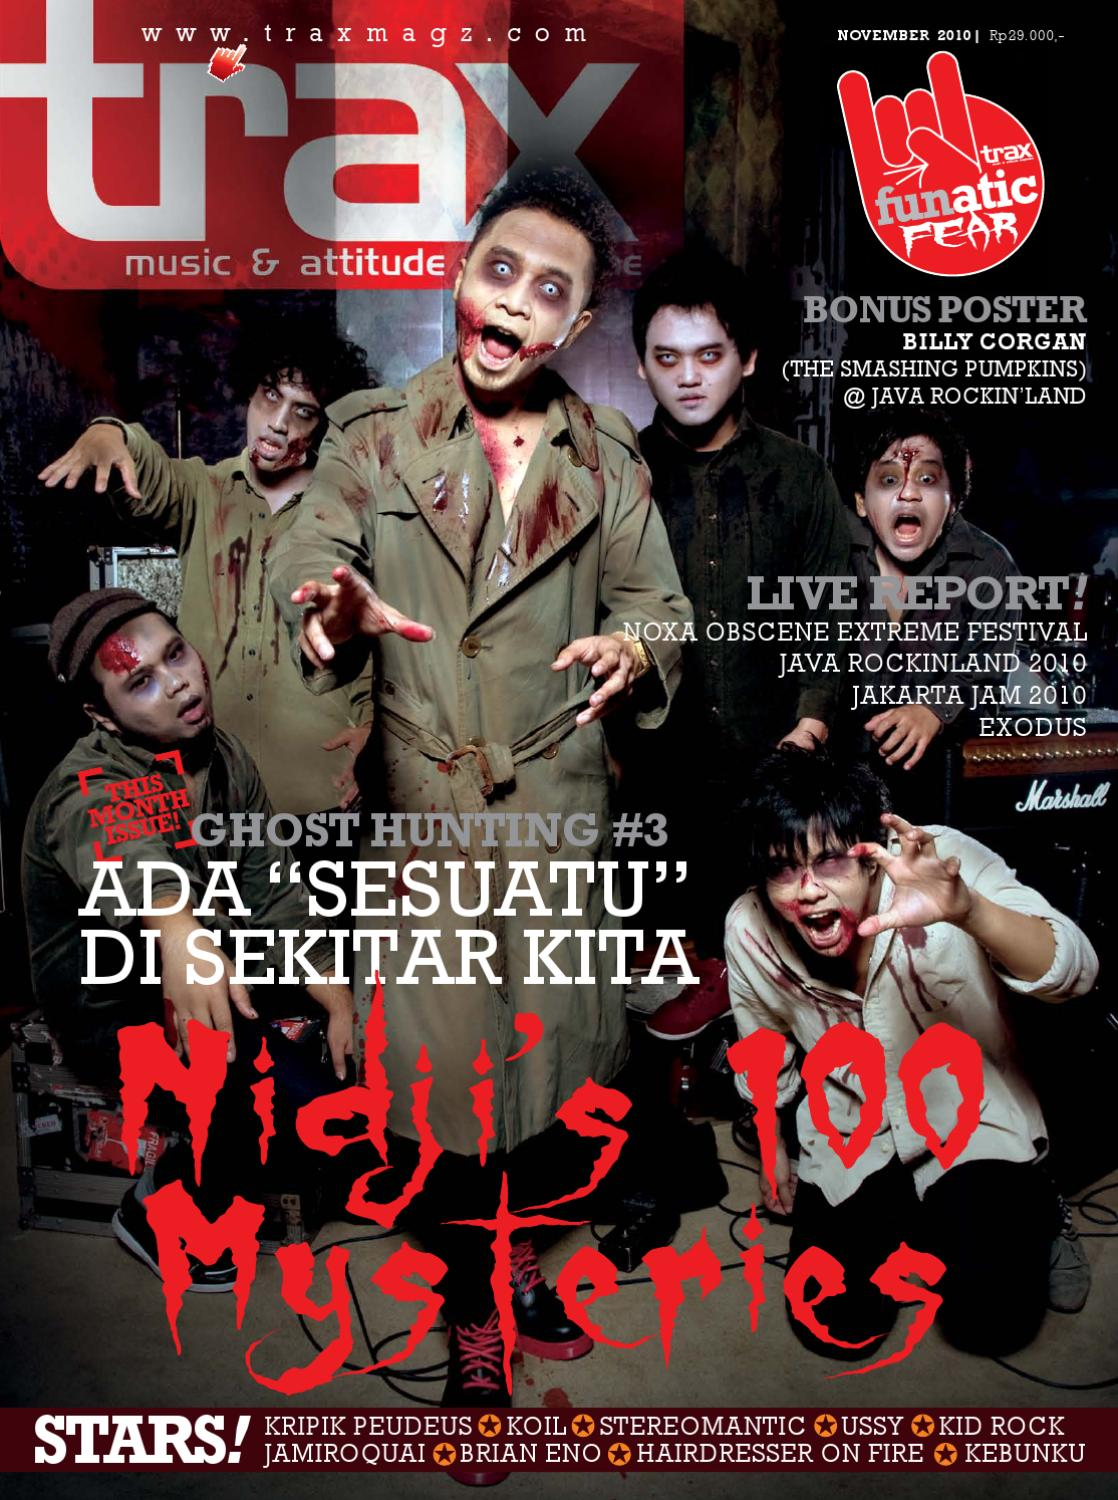 Trax Magazine November 2010 By Issuu Stiker Acil Versi Wanita